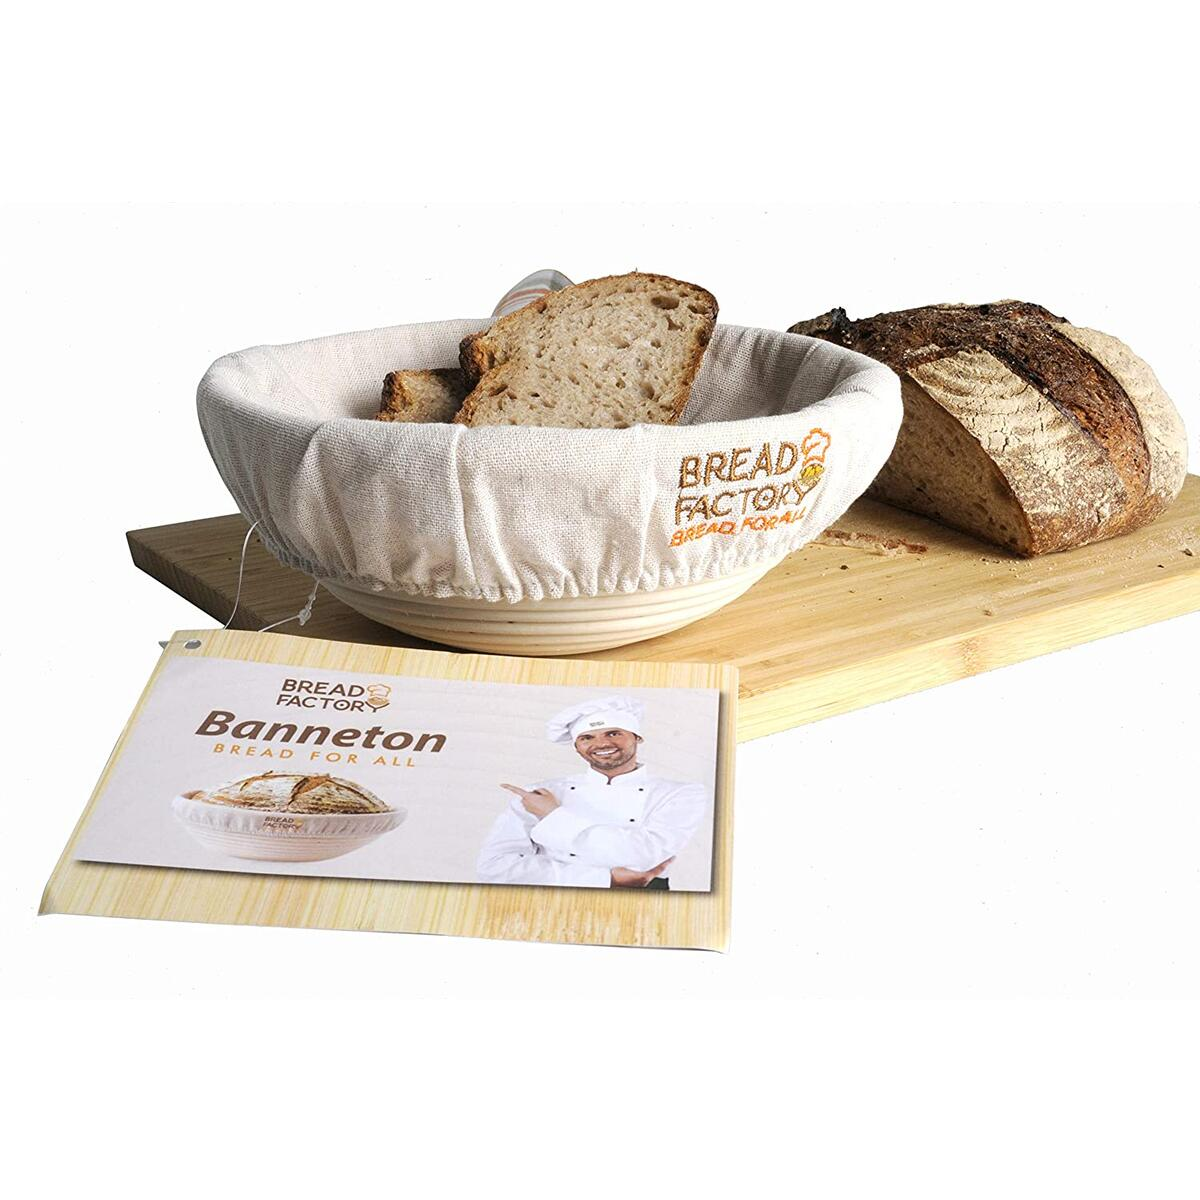 Bread Factory 9 Inch Banneton Proofing Basket Set